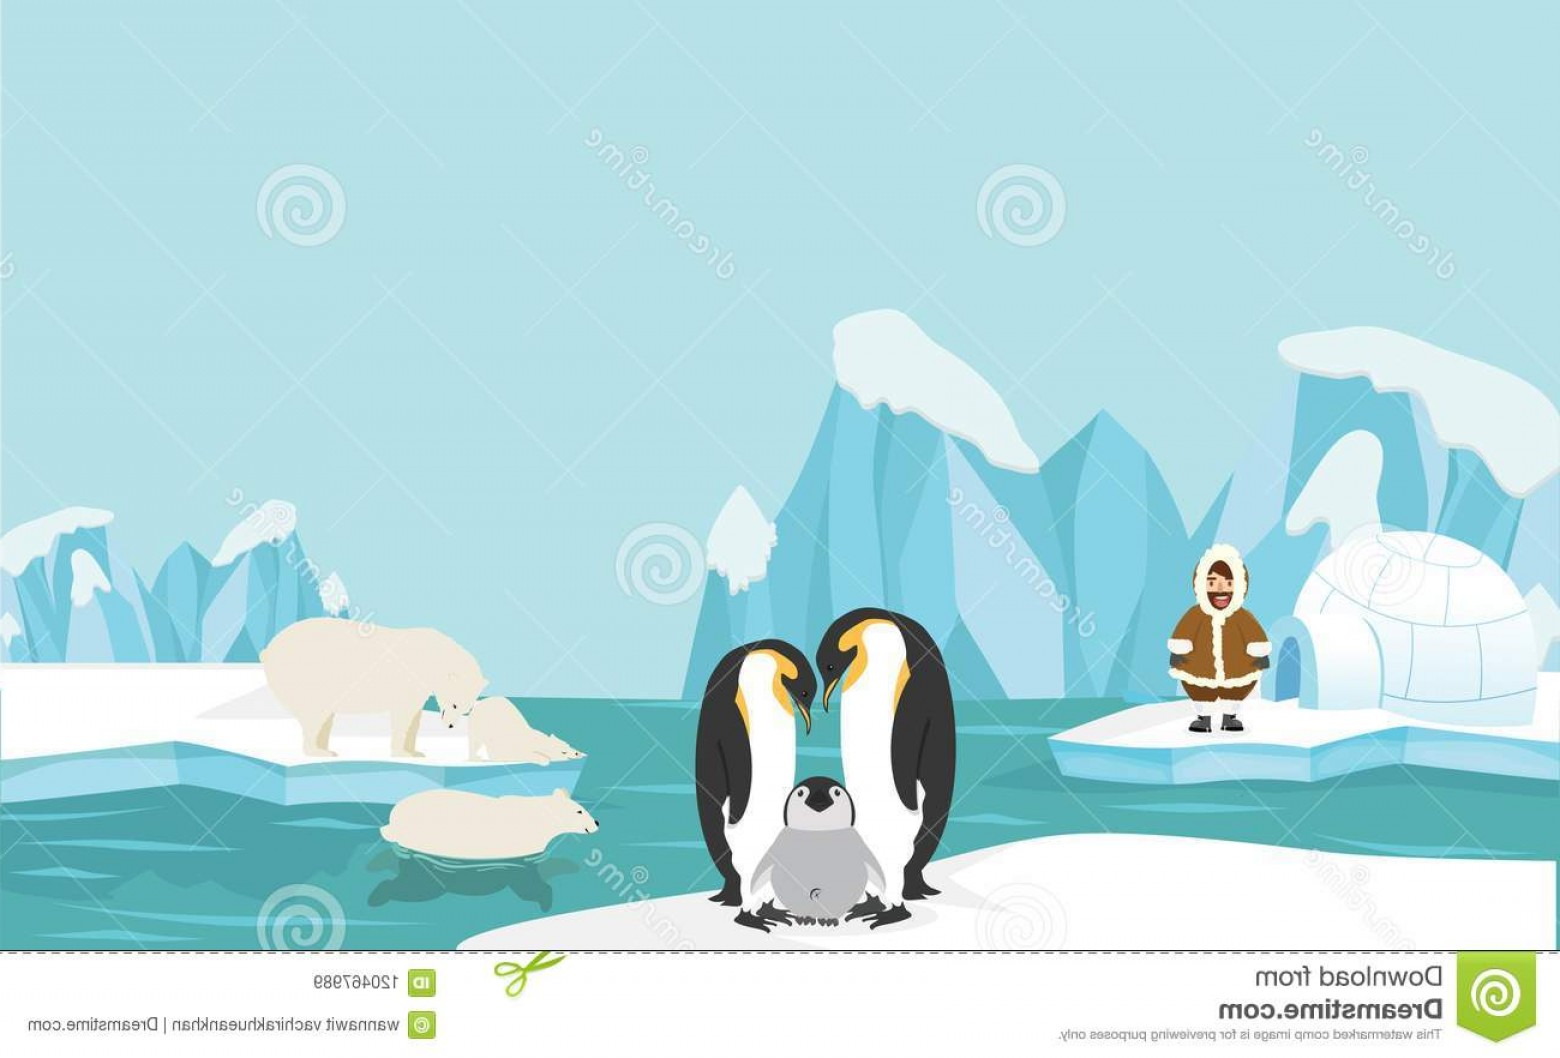 North Pole Landscape Vector: Vector Illustration Flat Minimal Vector File Copy Space Icon Animals People North Pole Arctic Landscape Background Image